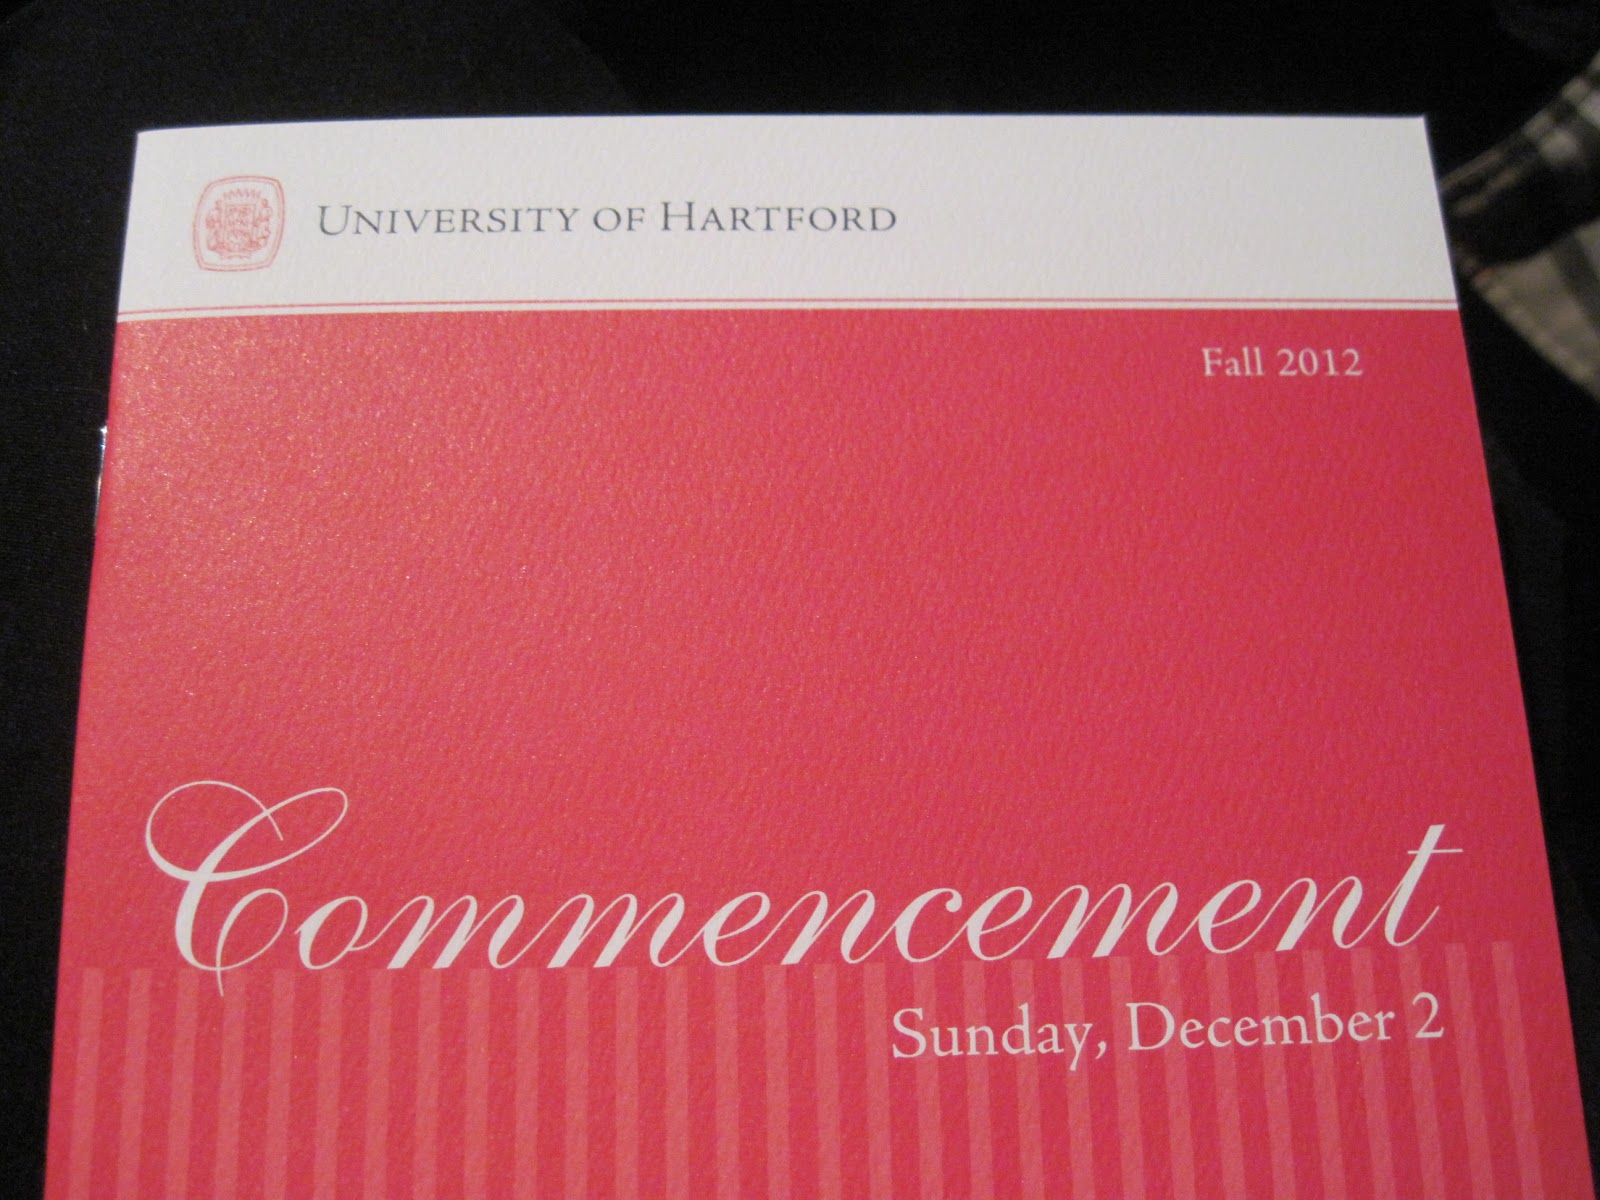 ceremony program template the programs and gown details graduation ...